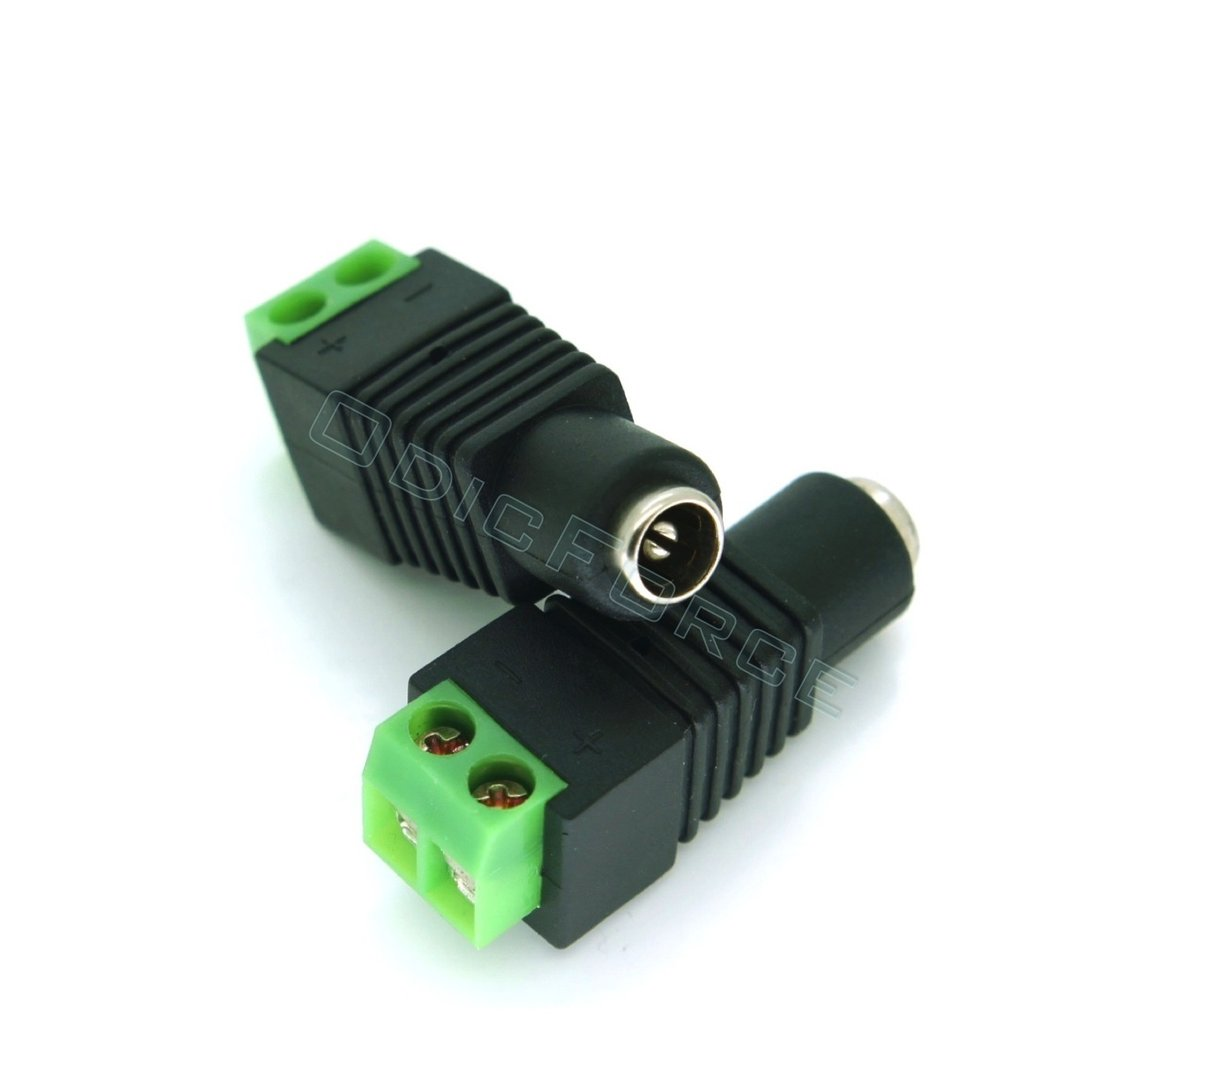 DC Adaptor (Socket) 2.1mm Pin 5.5mm Diameter